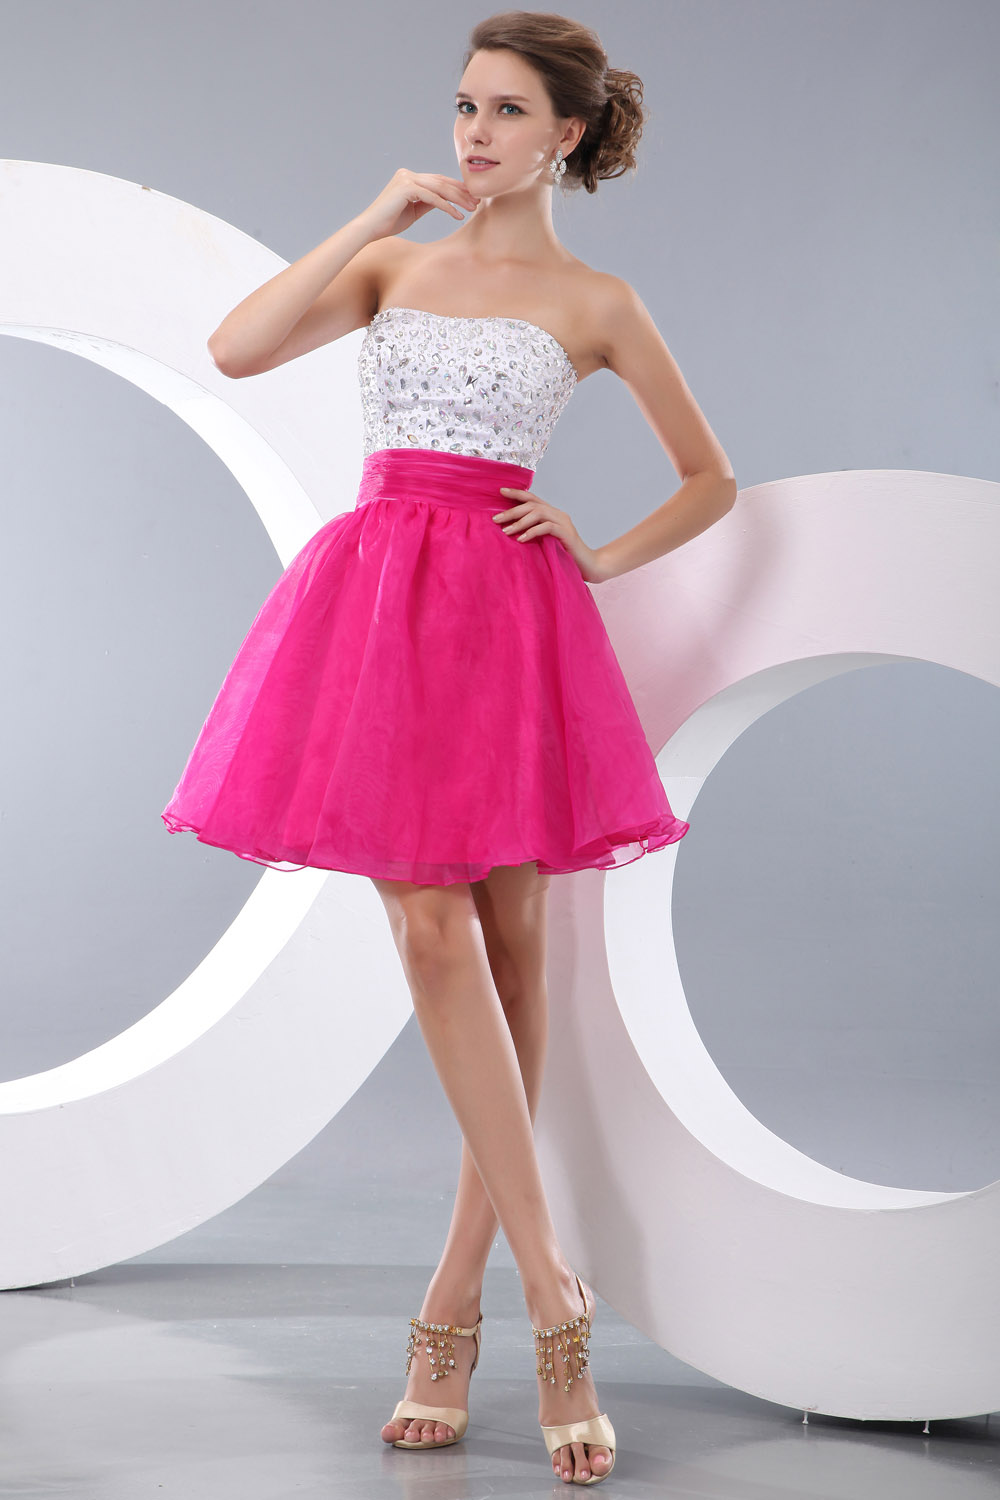 Princess One Shoulder Knee-length Tulle Graduation Dress